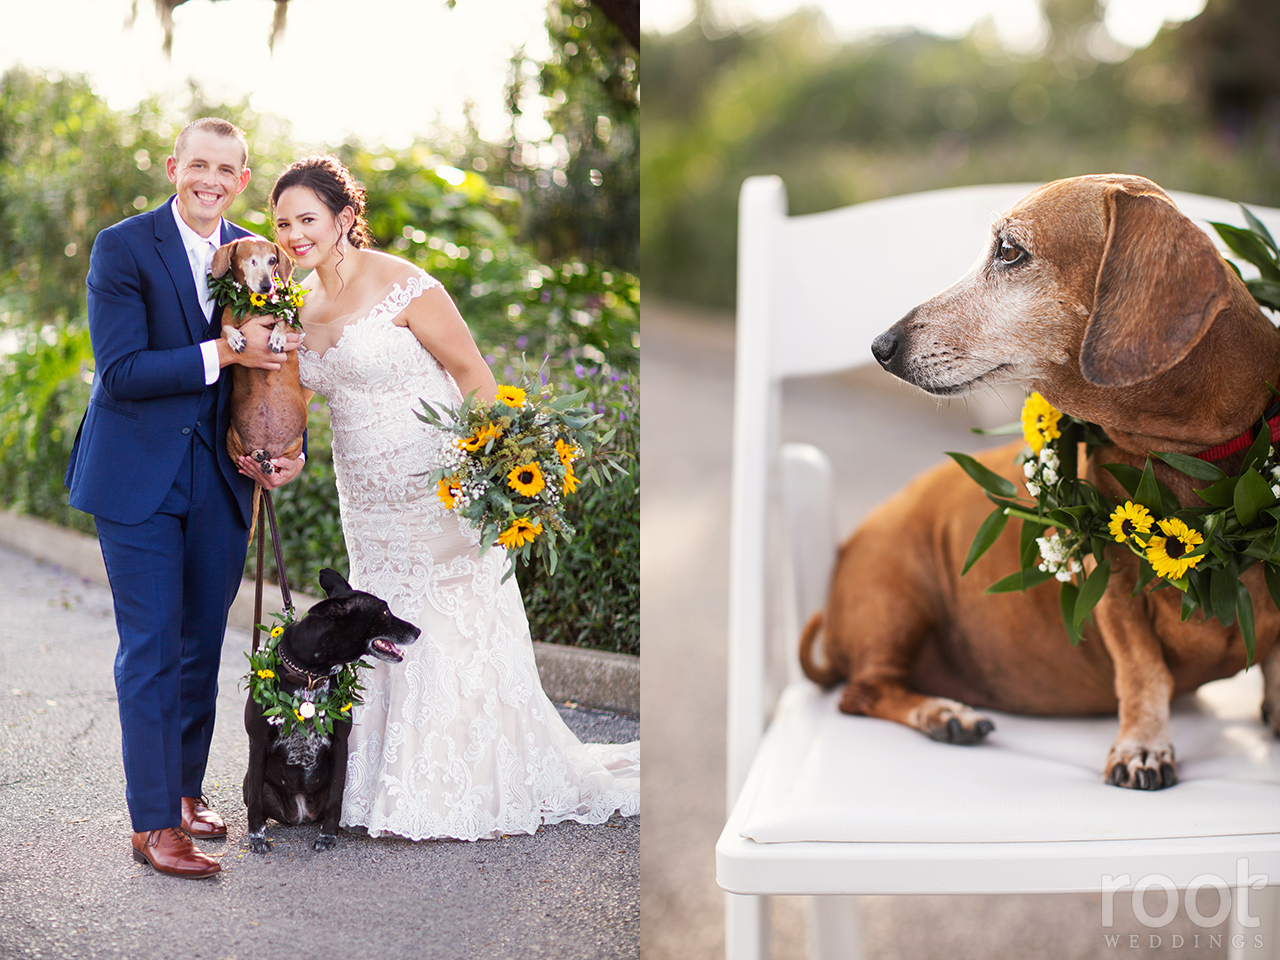 A bride and groom pose with sunflower bouquet and their dogs